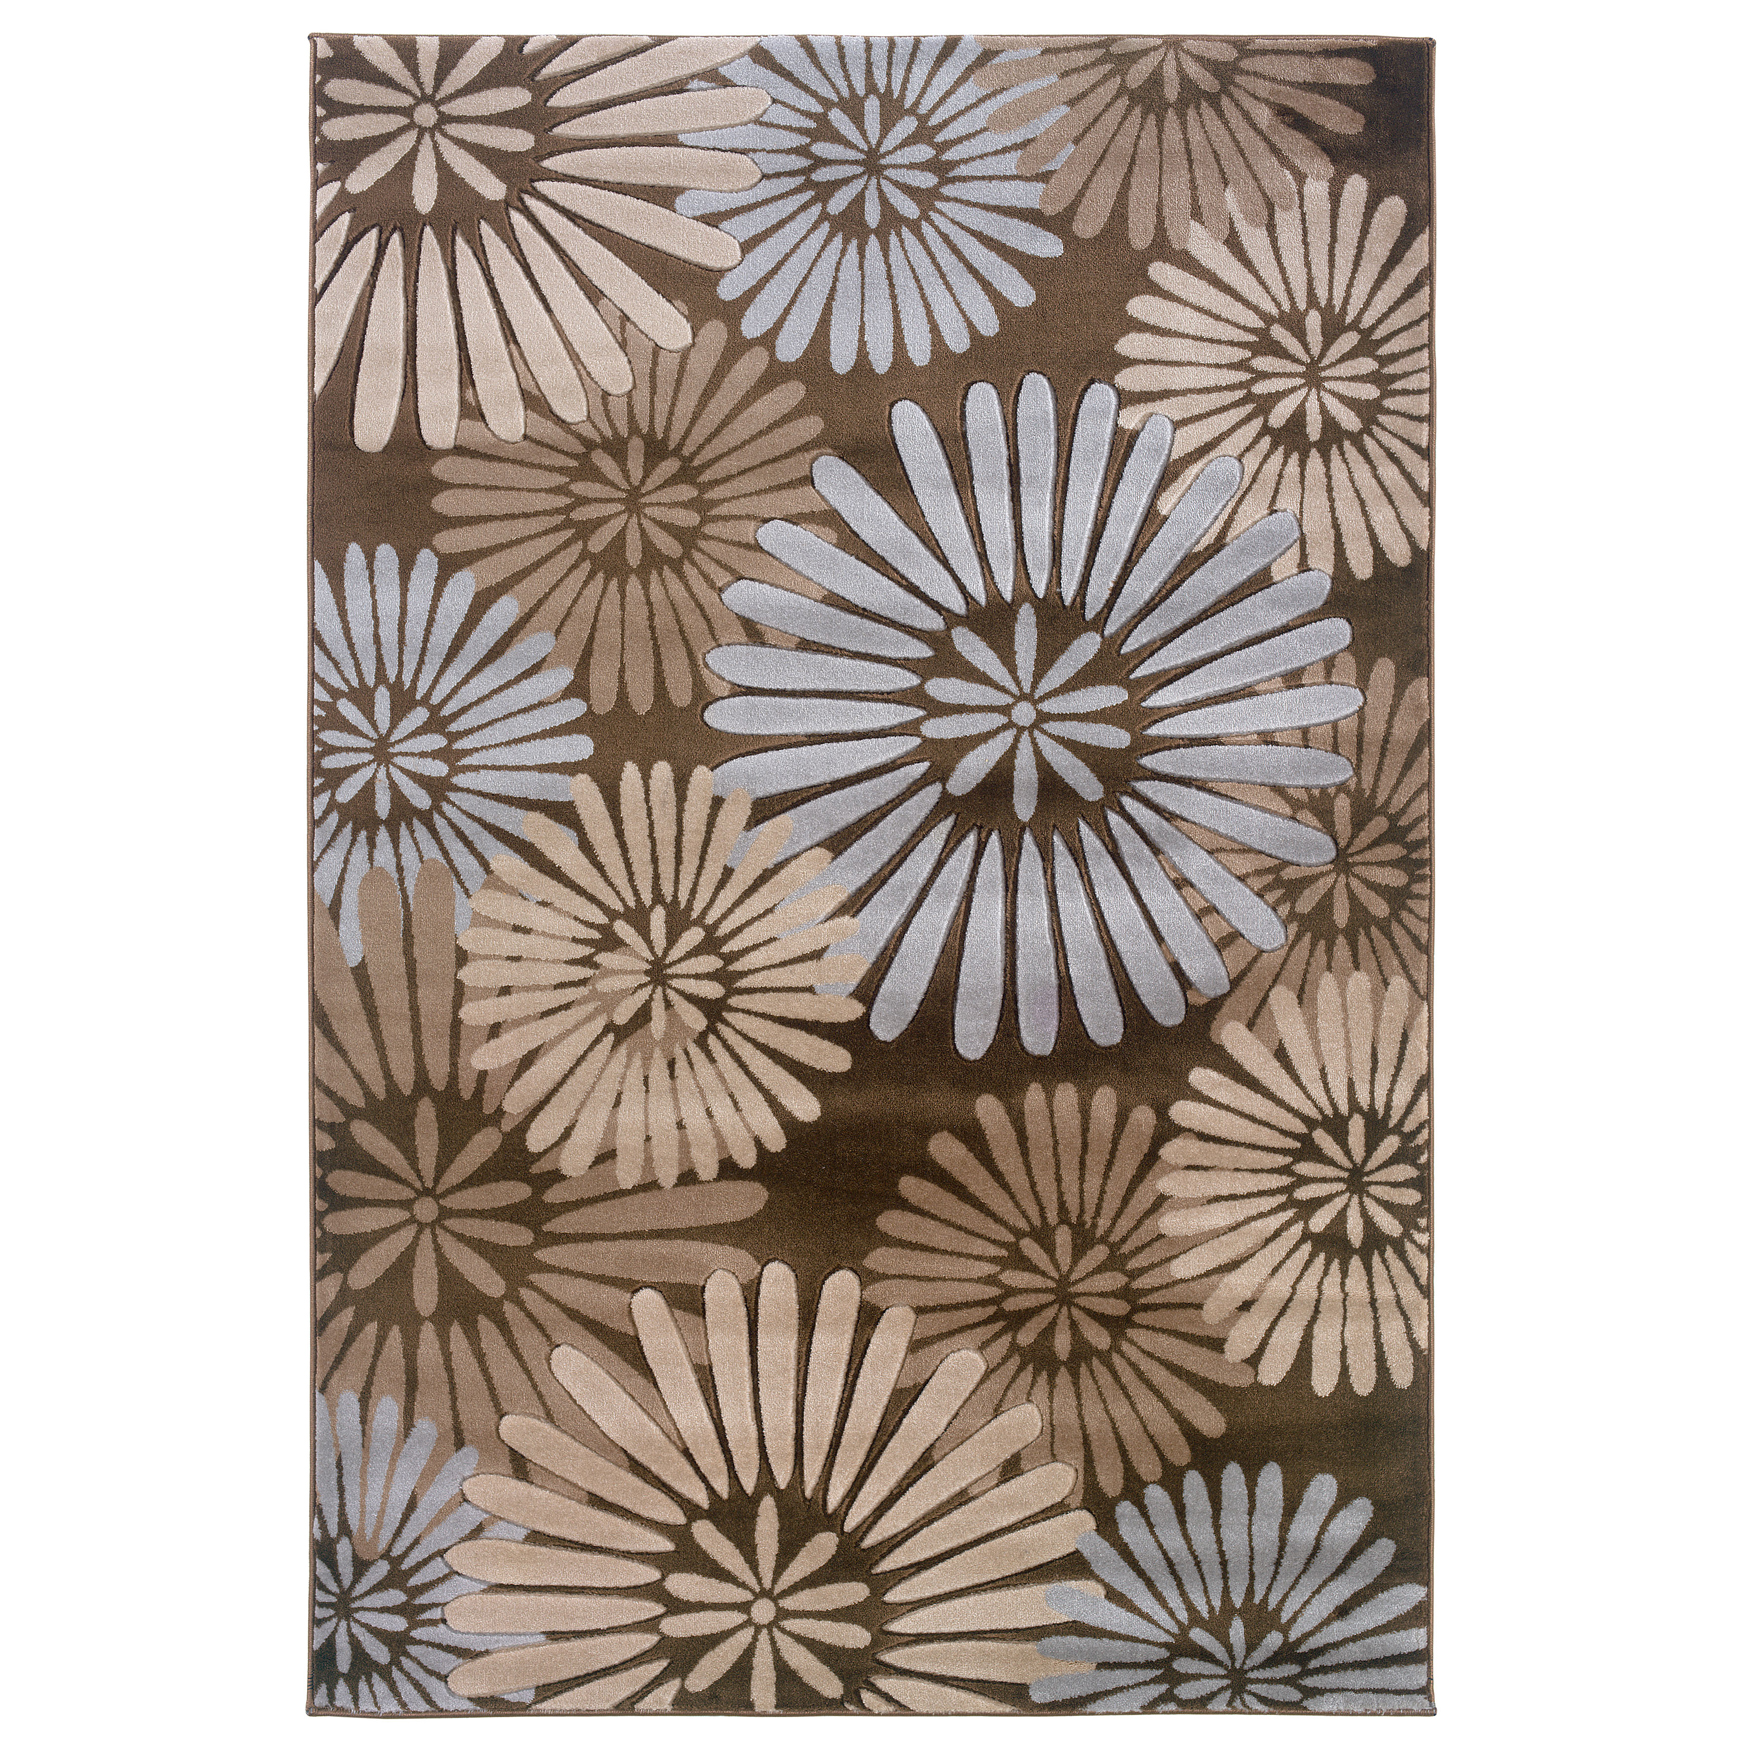 Milan Brown/Aqua 8'X10' Area Rug, BROWN AQUA